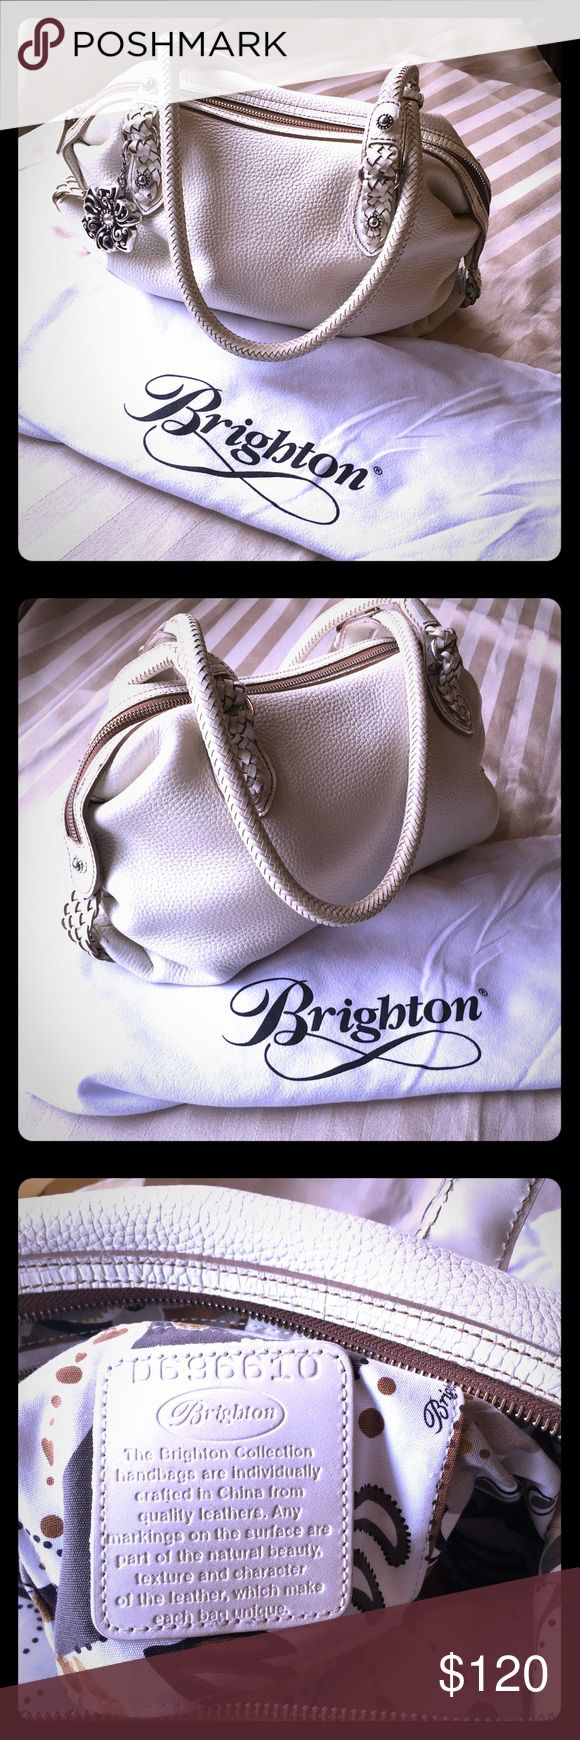 67 best Brighton and more travel images on Pinterest | Baggage ...